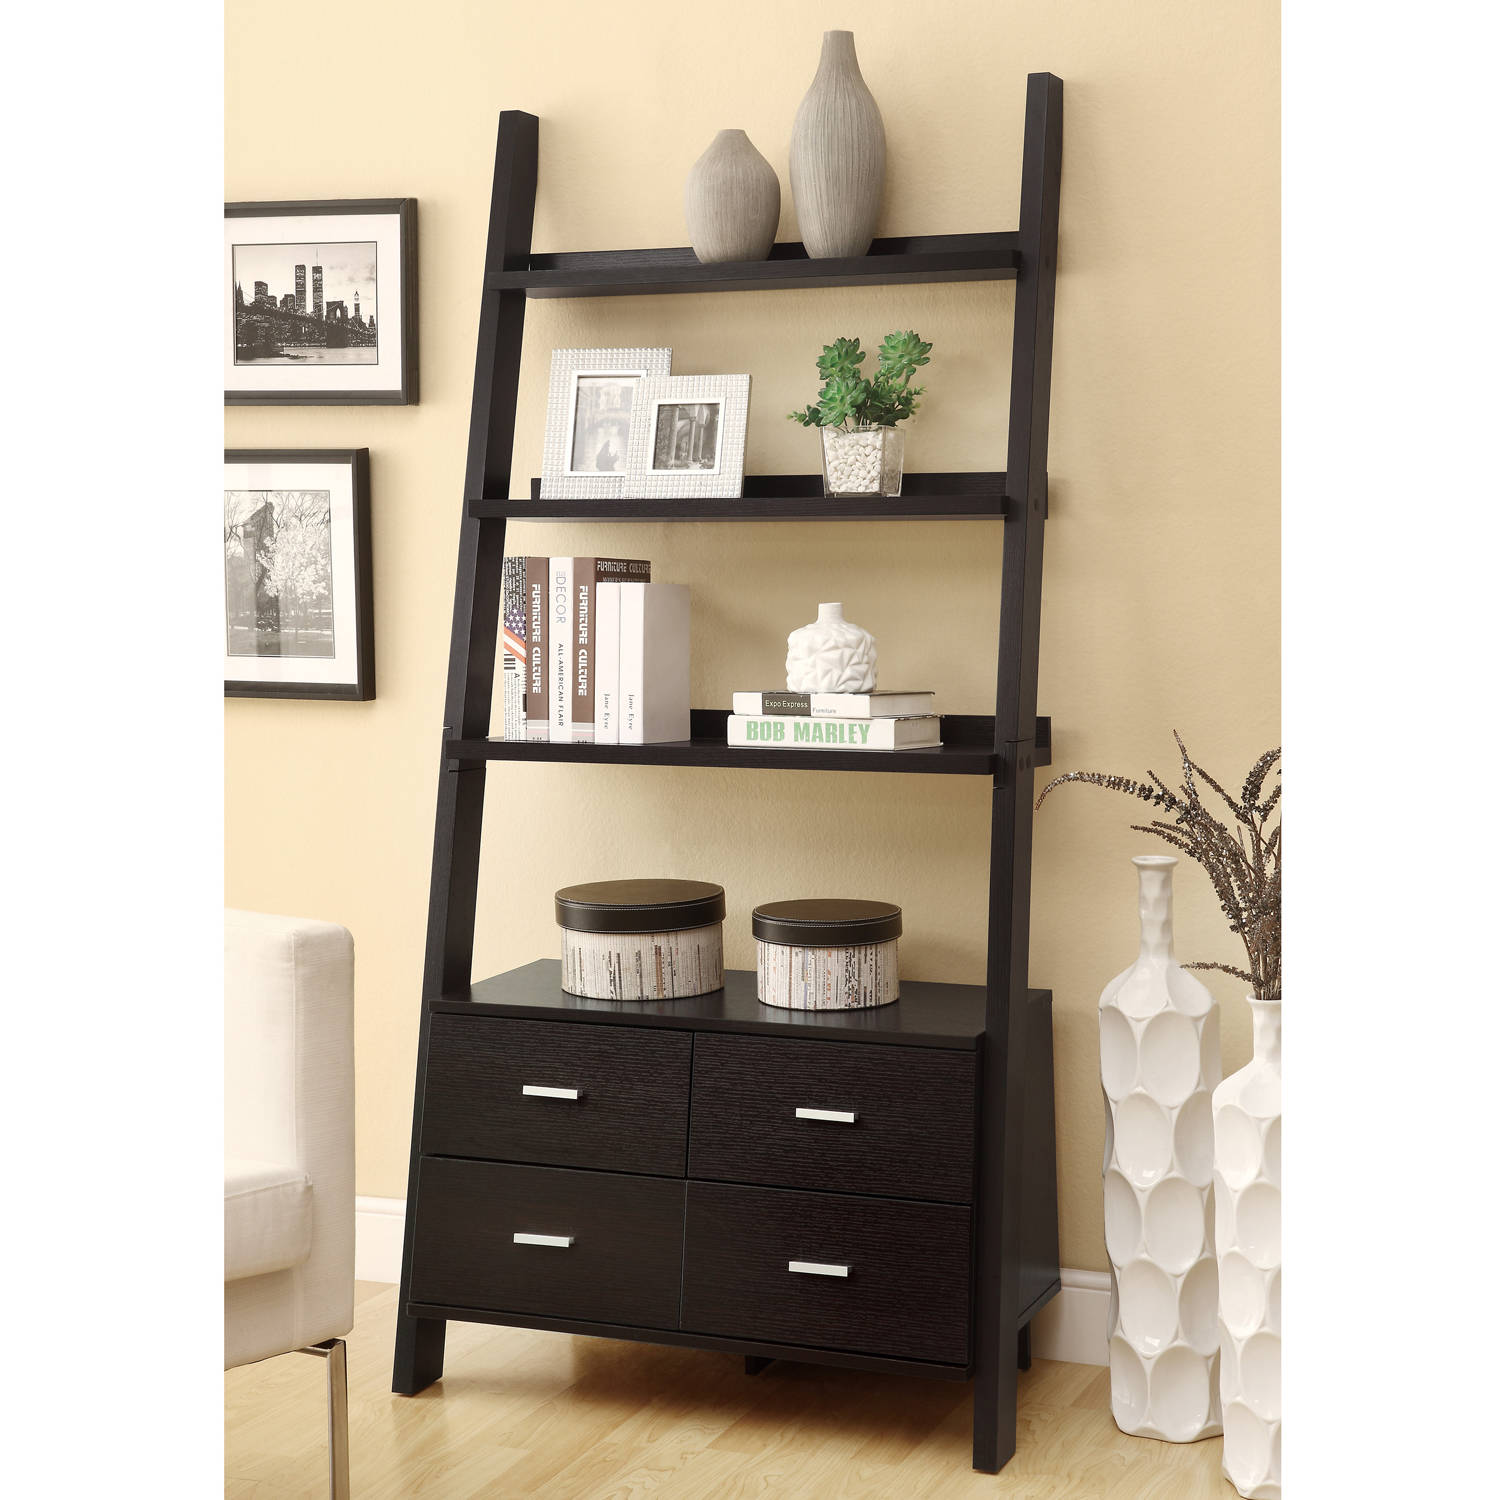 Coaster 4 Drawer Ladder Style Bookcase Photo Gallery